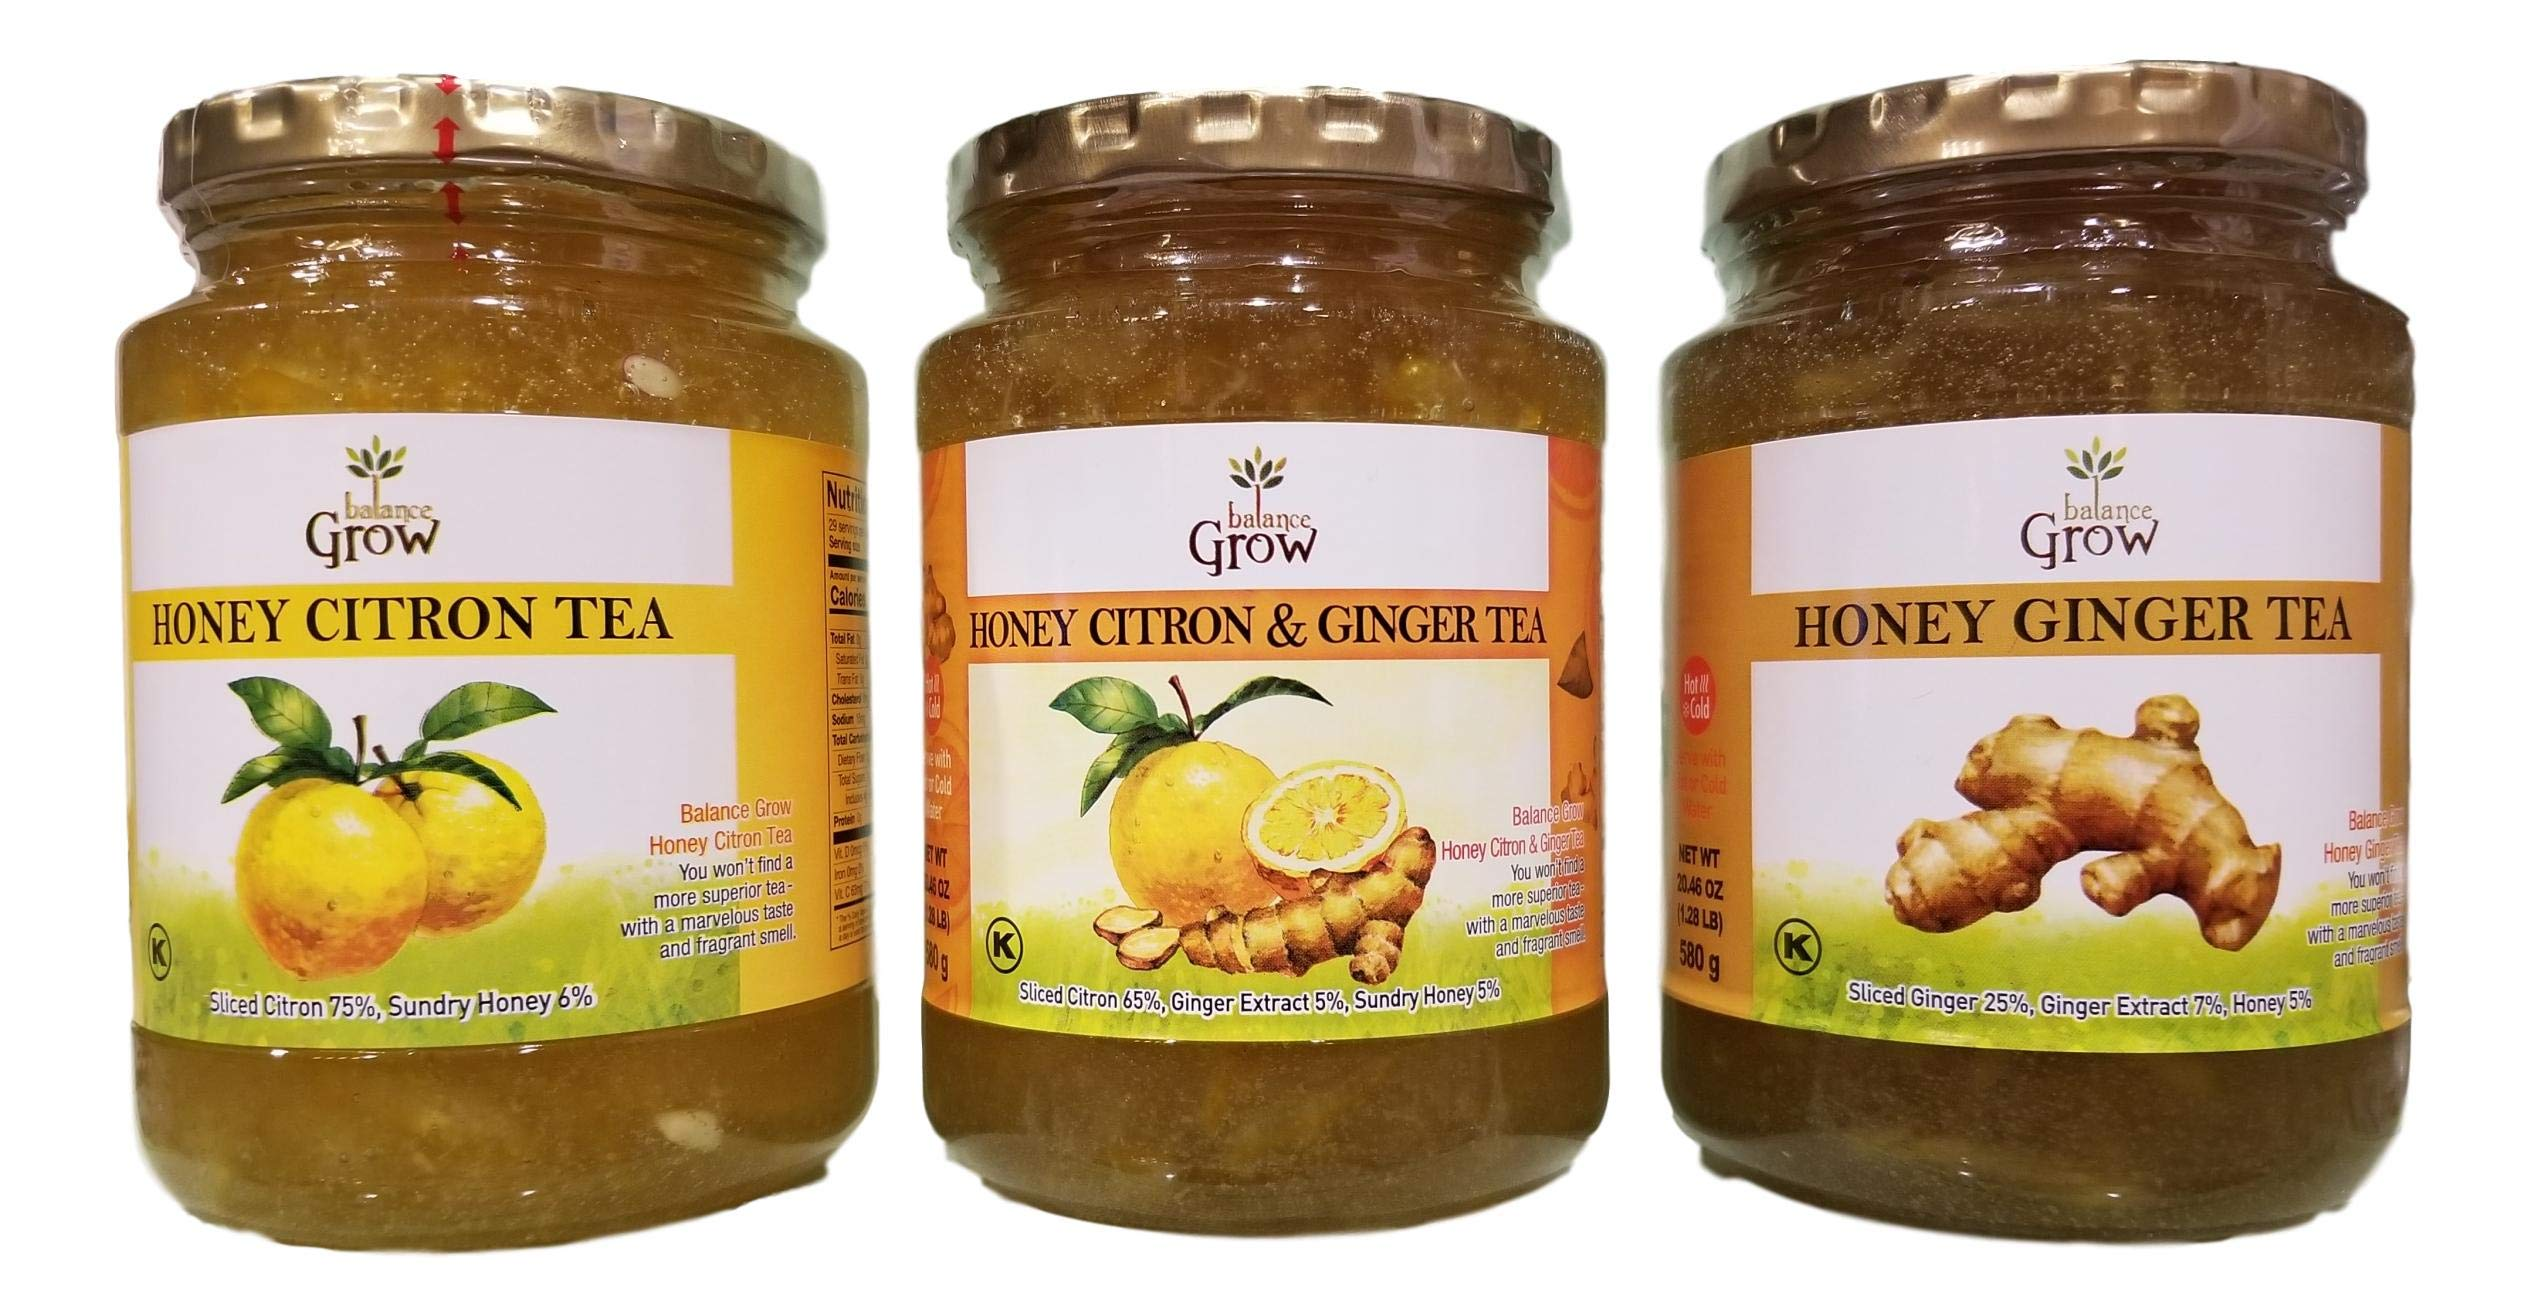 Balance Grow Honey Tea Set- Citron, Citron & Ginger, and Ginger Tea (580grams x 3ea)